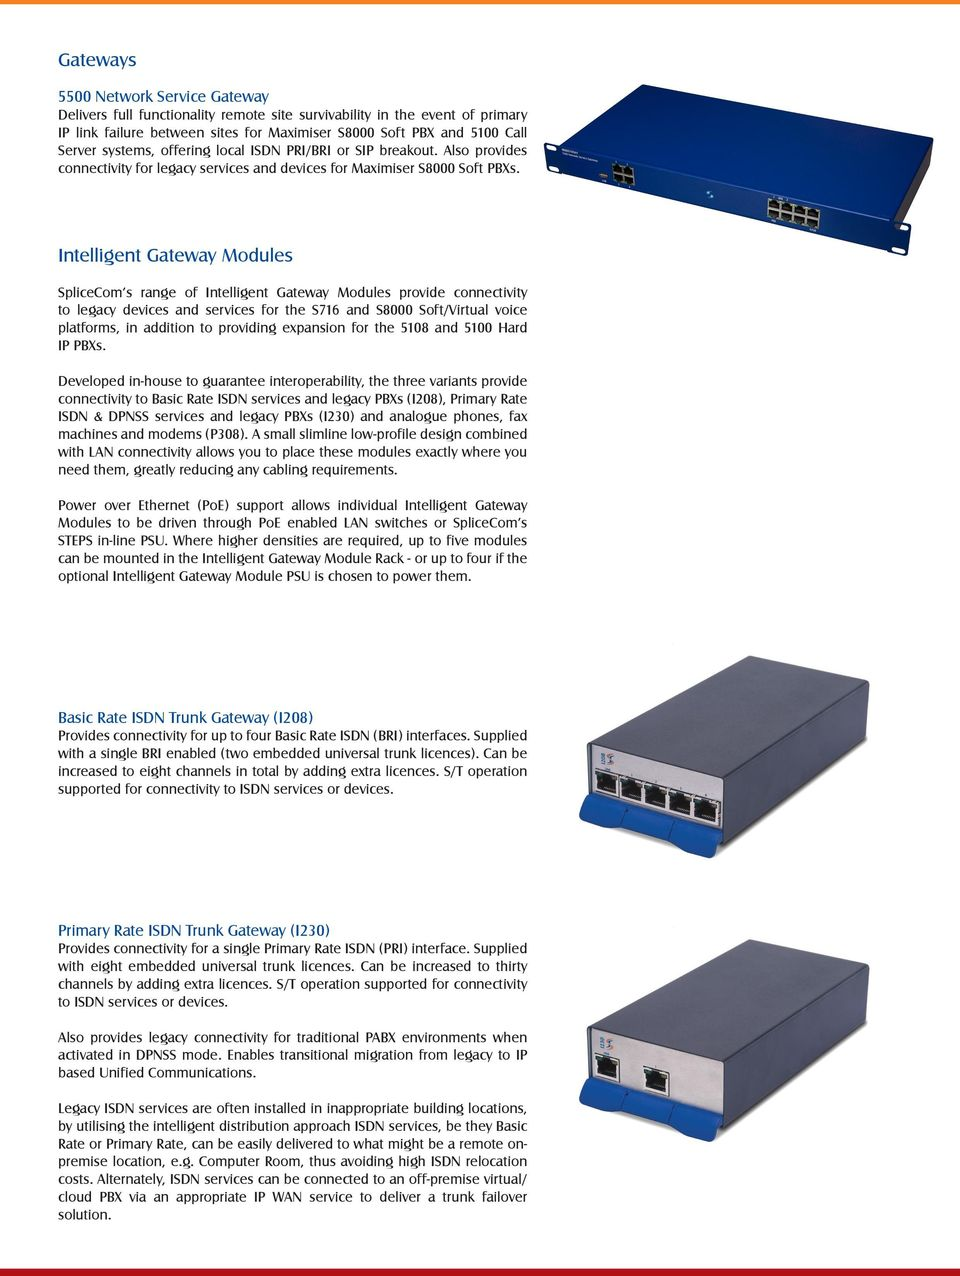 Intelligent Gateway Modules SpliceCom s range of Intelligent Gateway Modules provide connectivity to legacy devices and services for the S76 and S8000 Soft/Virtual voice platforms, in addition to